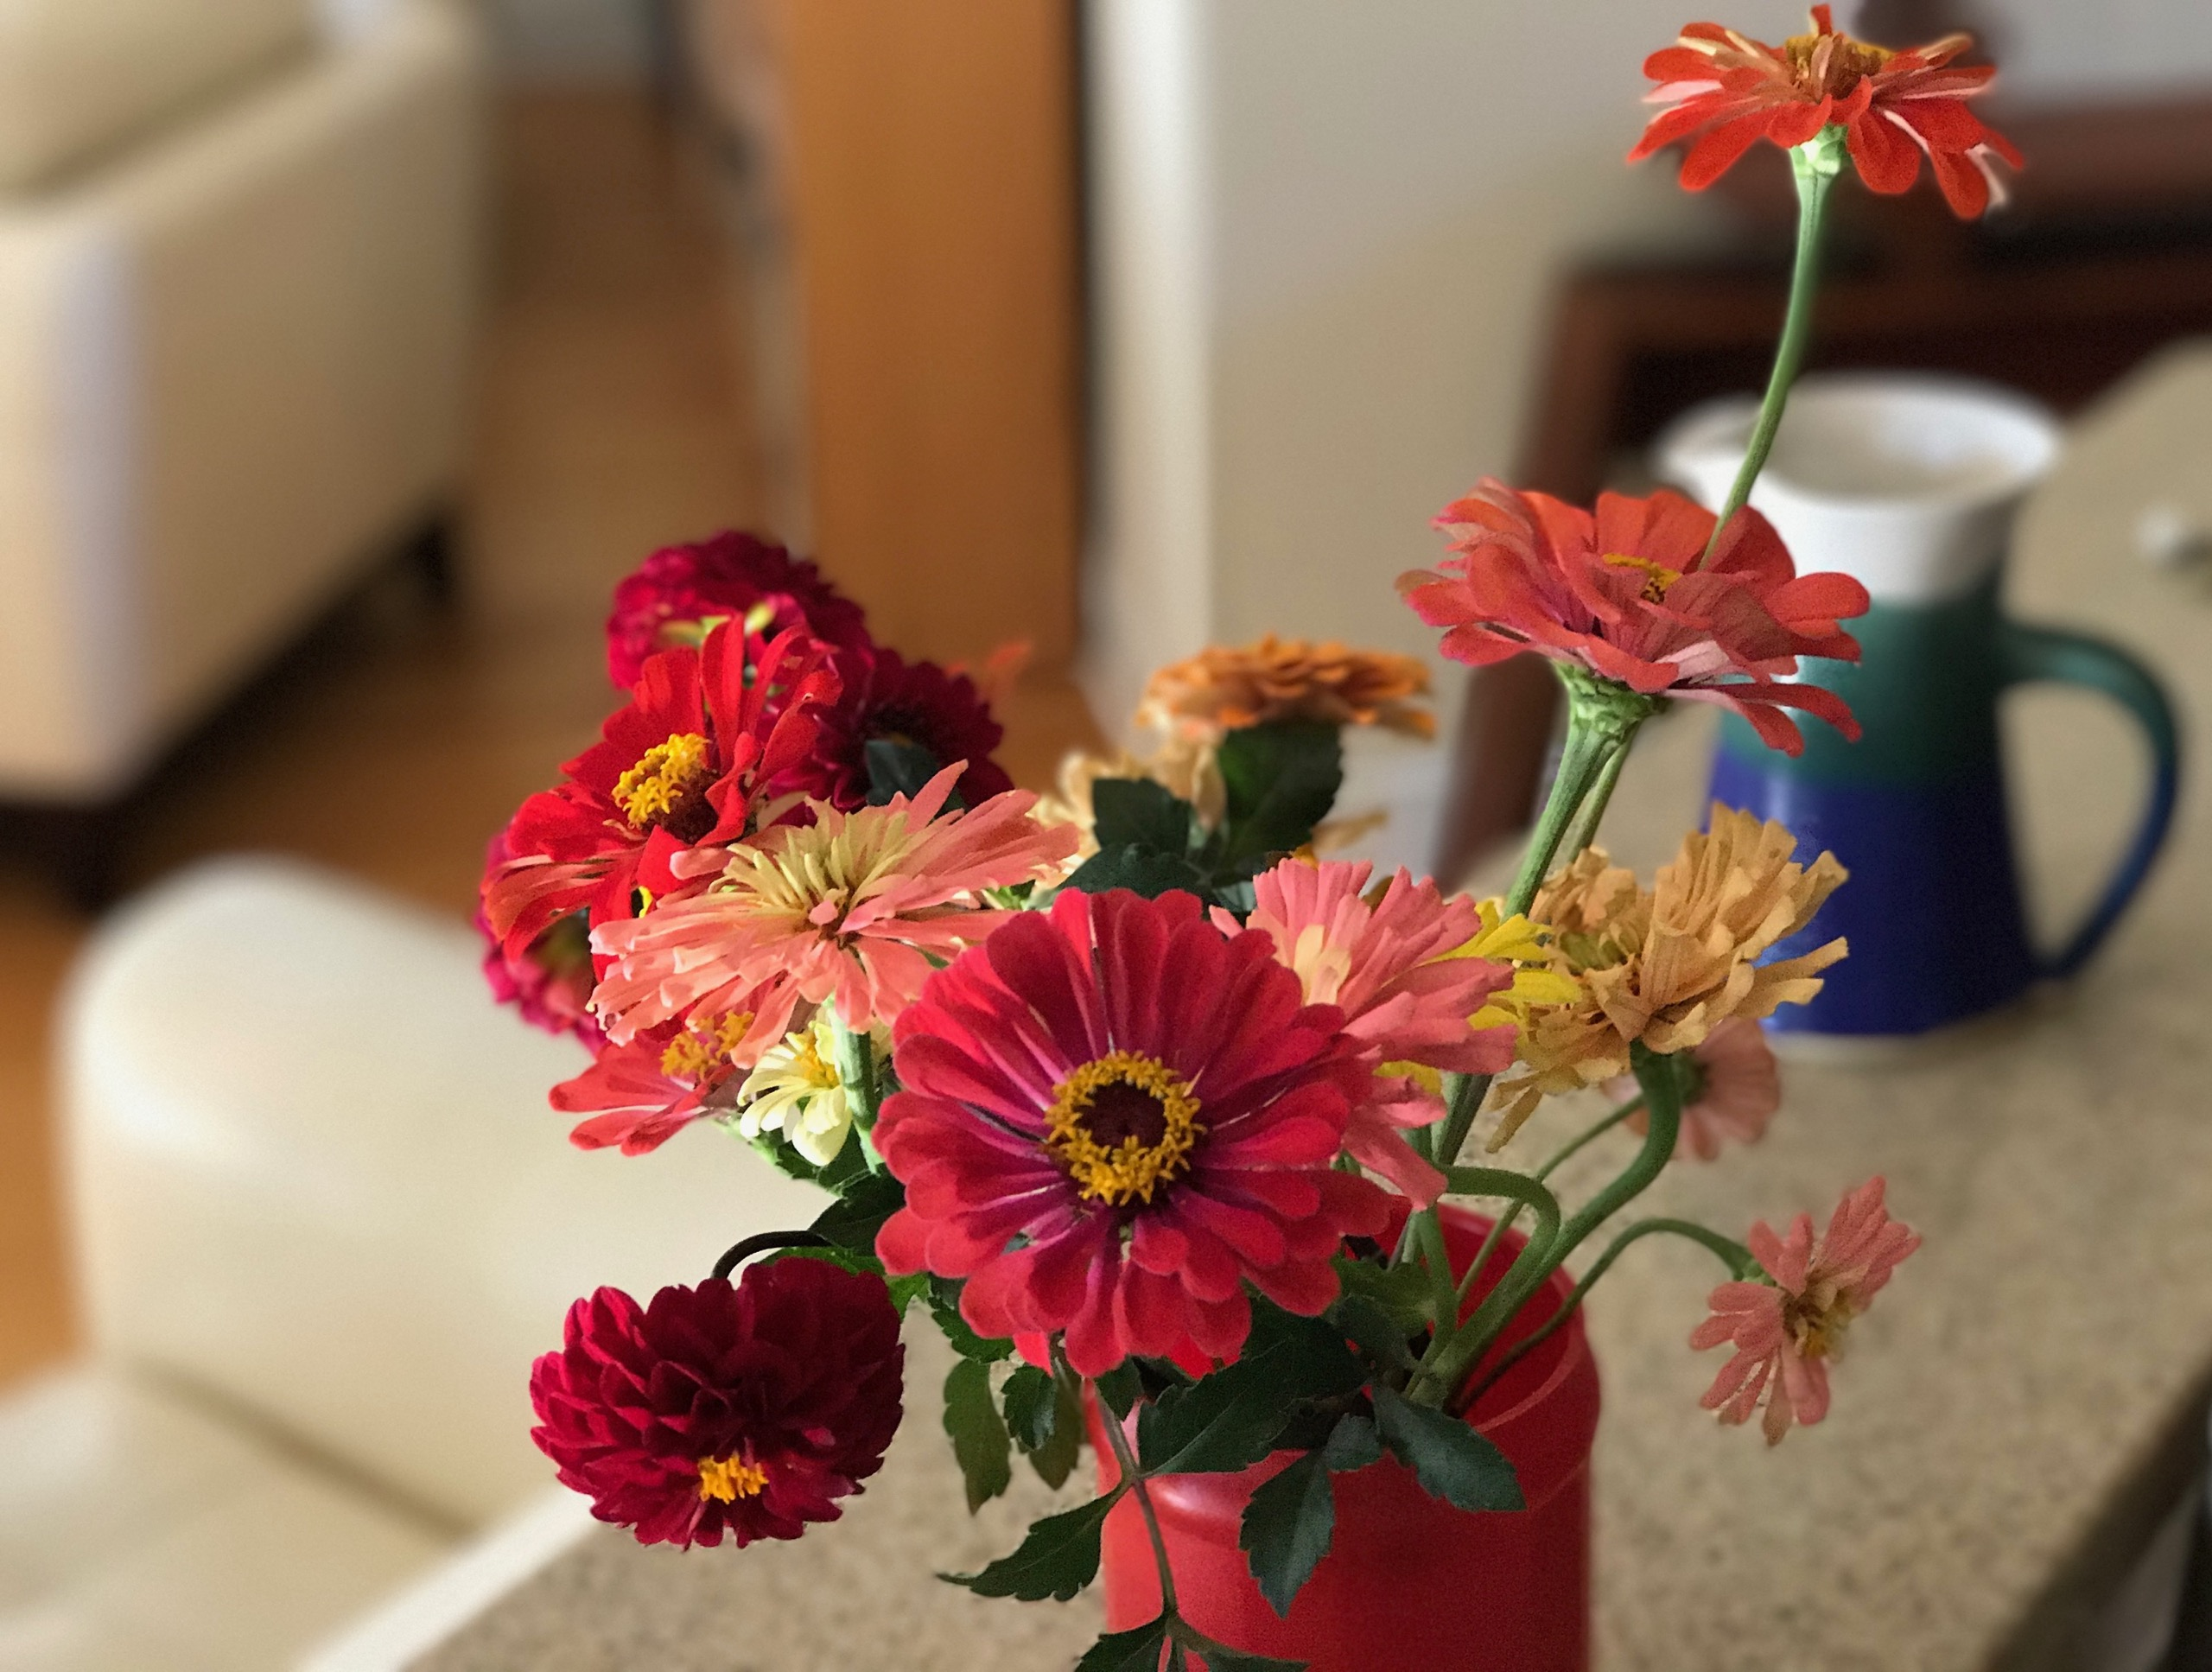 In A Vase On Monday – Sunlight And Color | pbmGarden